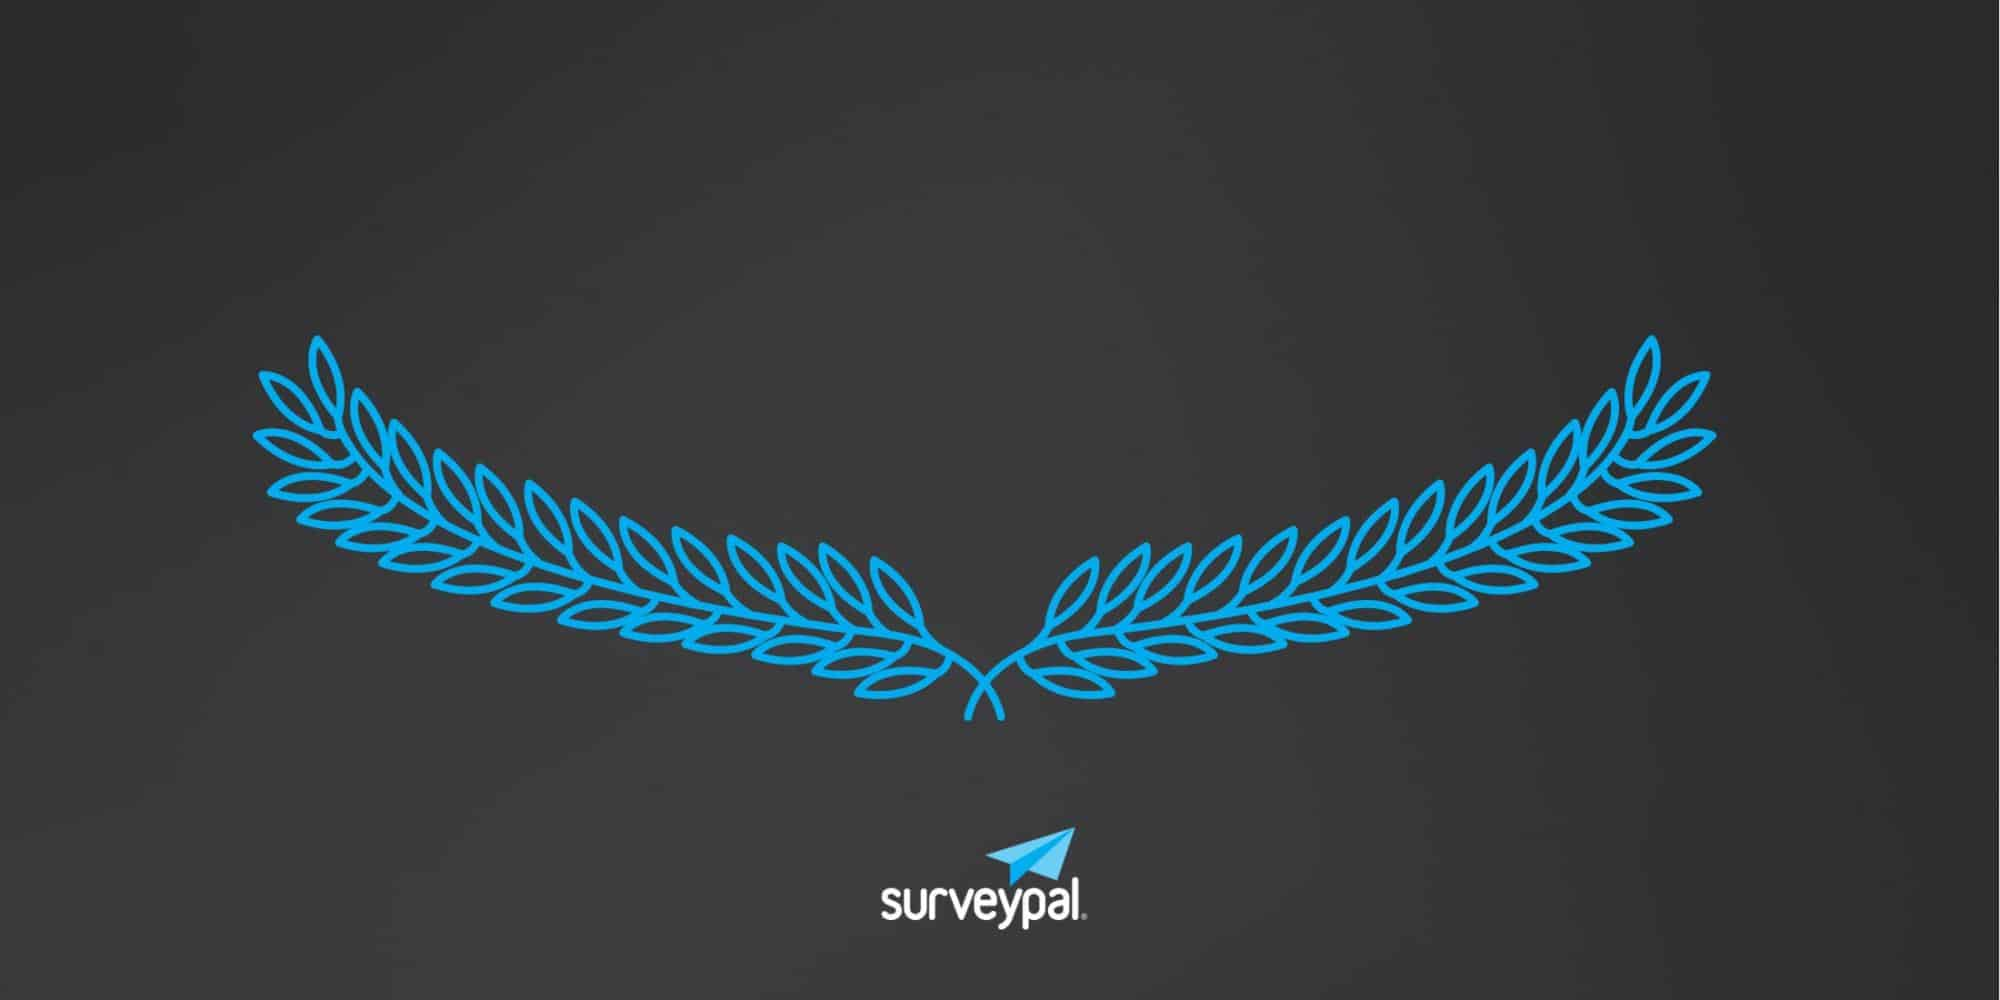 Surveypal logo and a stylized olive wreath against a dark background